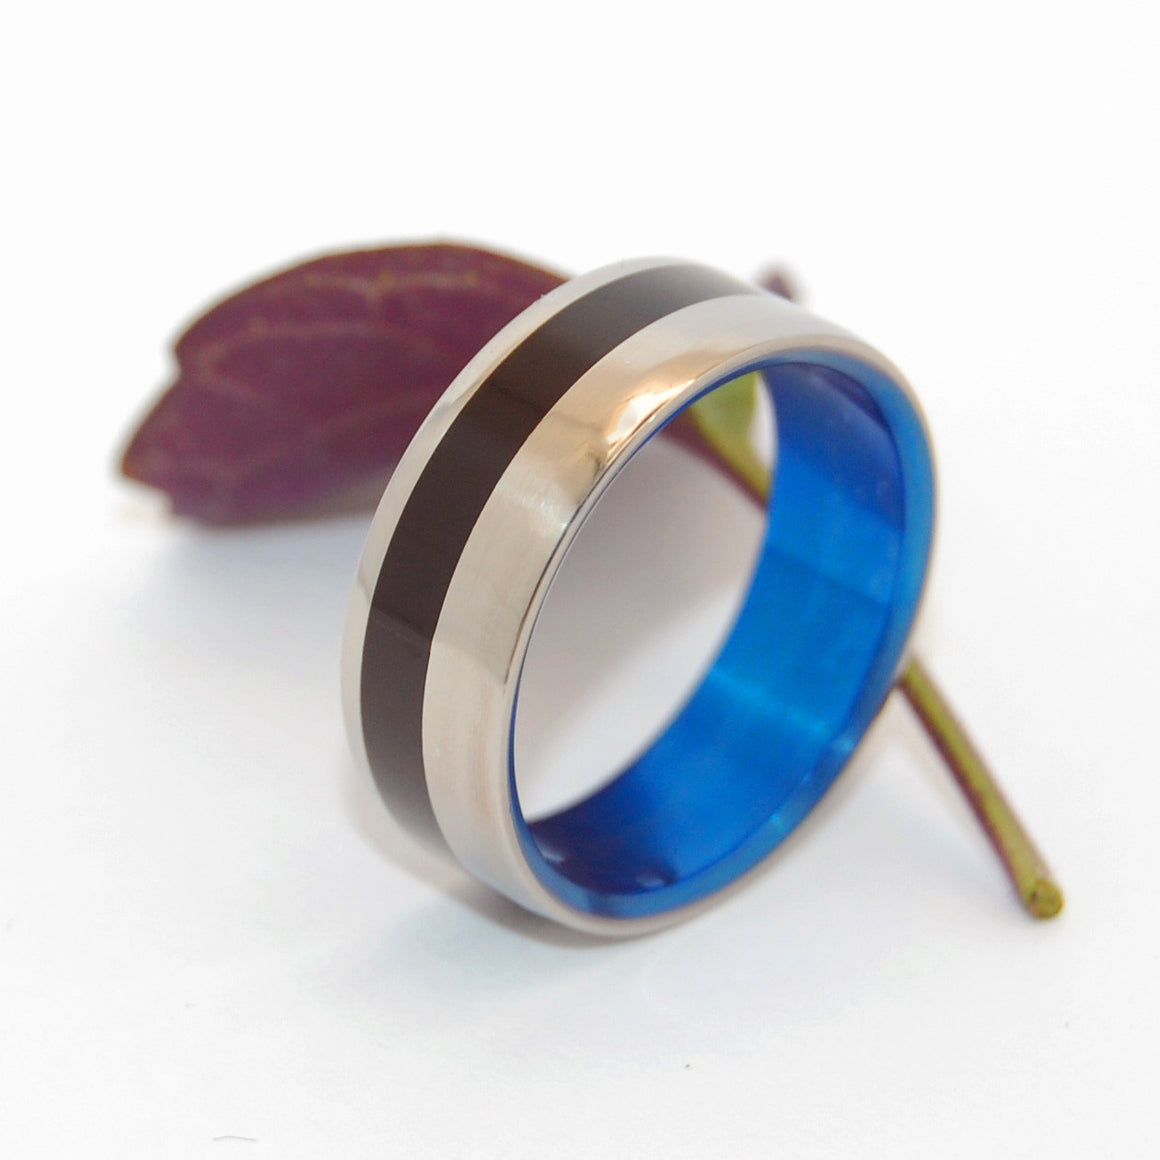 Beveled Heathcliff | Horn and Hand Anodized Titanium Wedding Ring